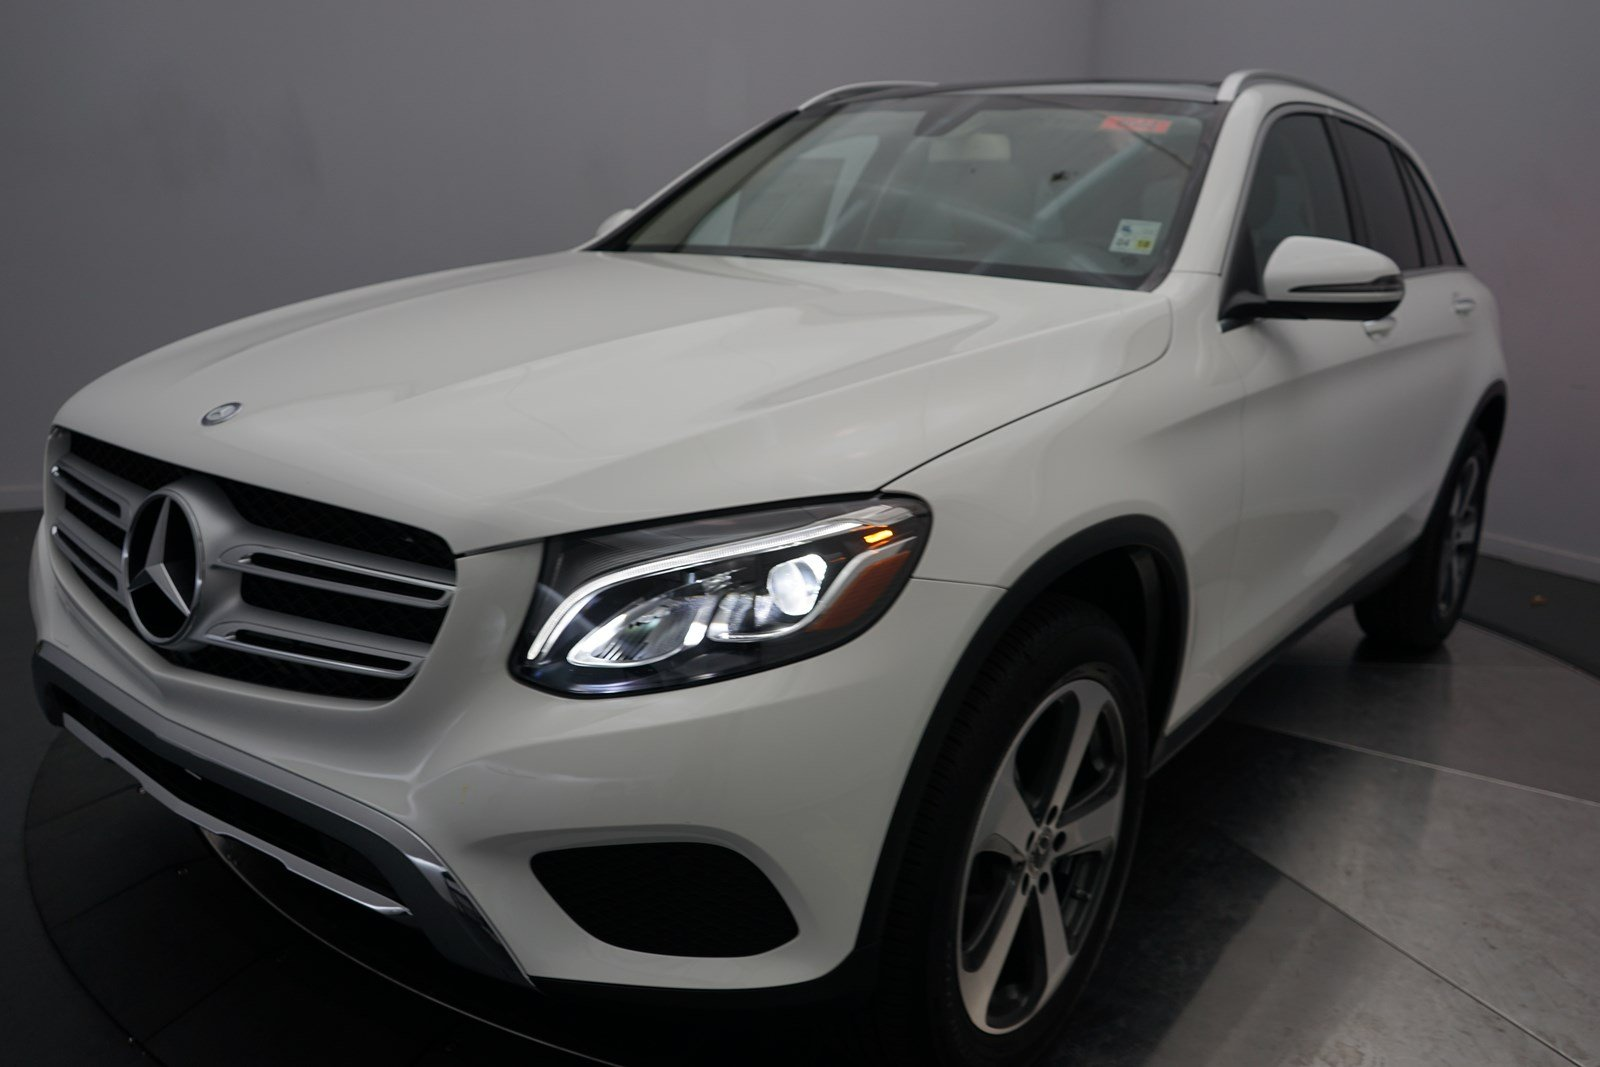 New 2017 mercedes benz glc glc 300 suv in shreveport 6044 for Mercedes benz glc 300 accessories